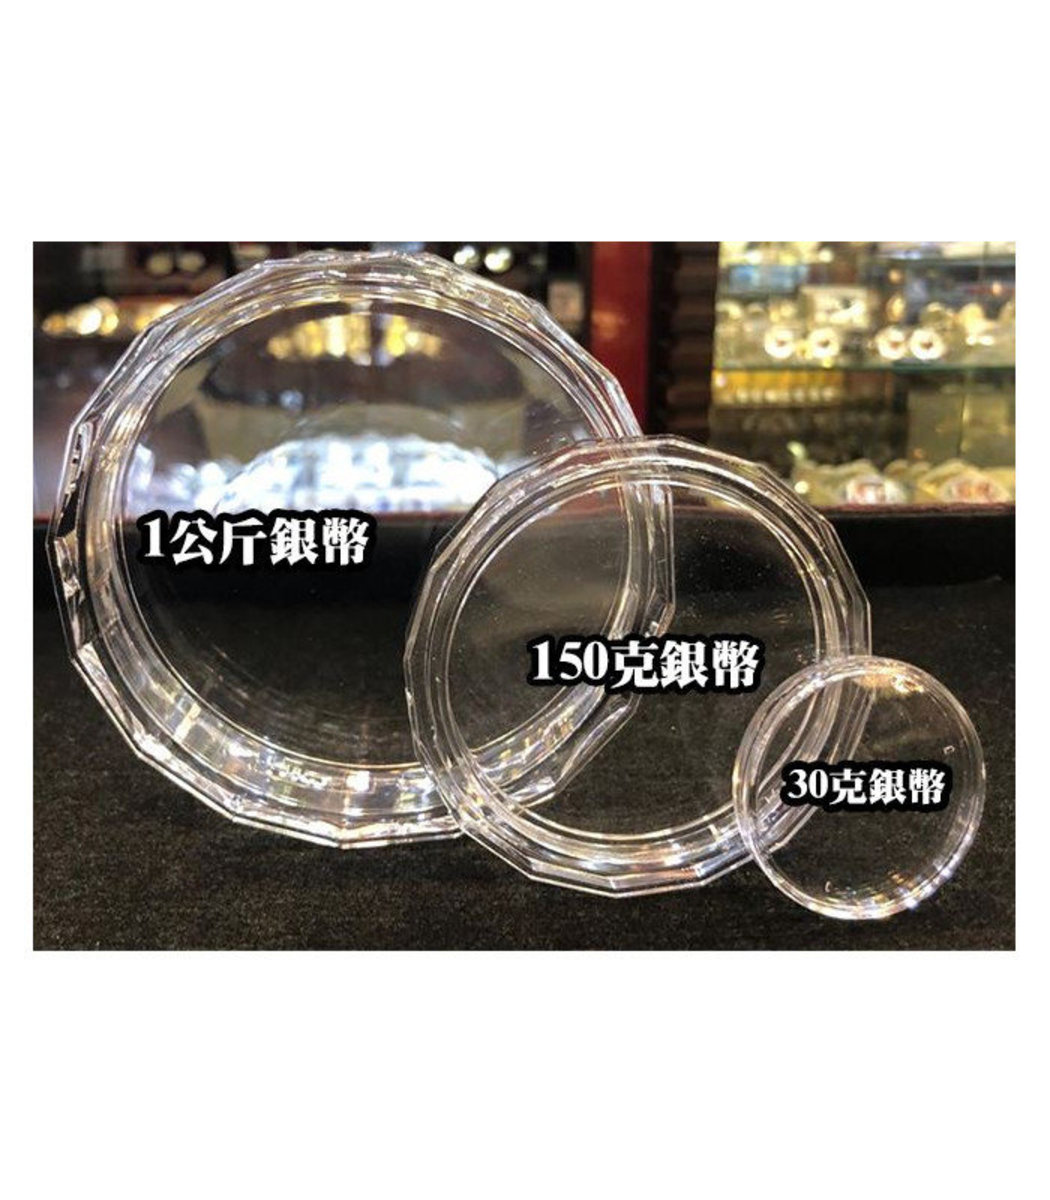 30g silver coins capsule